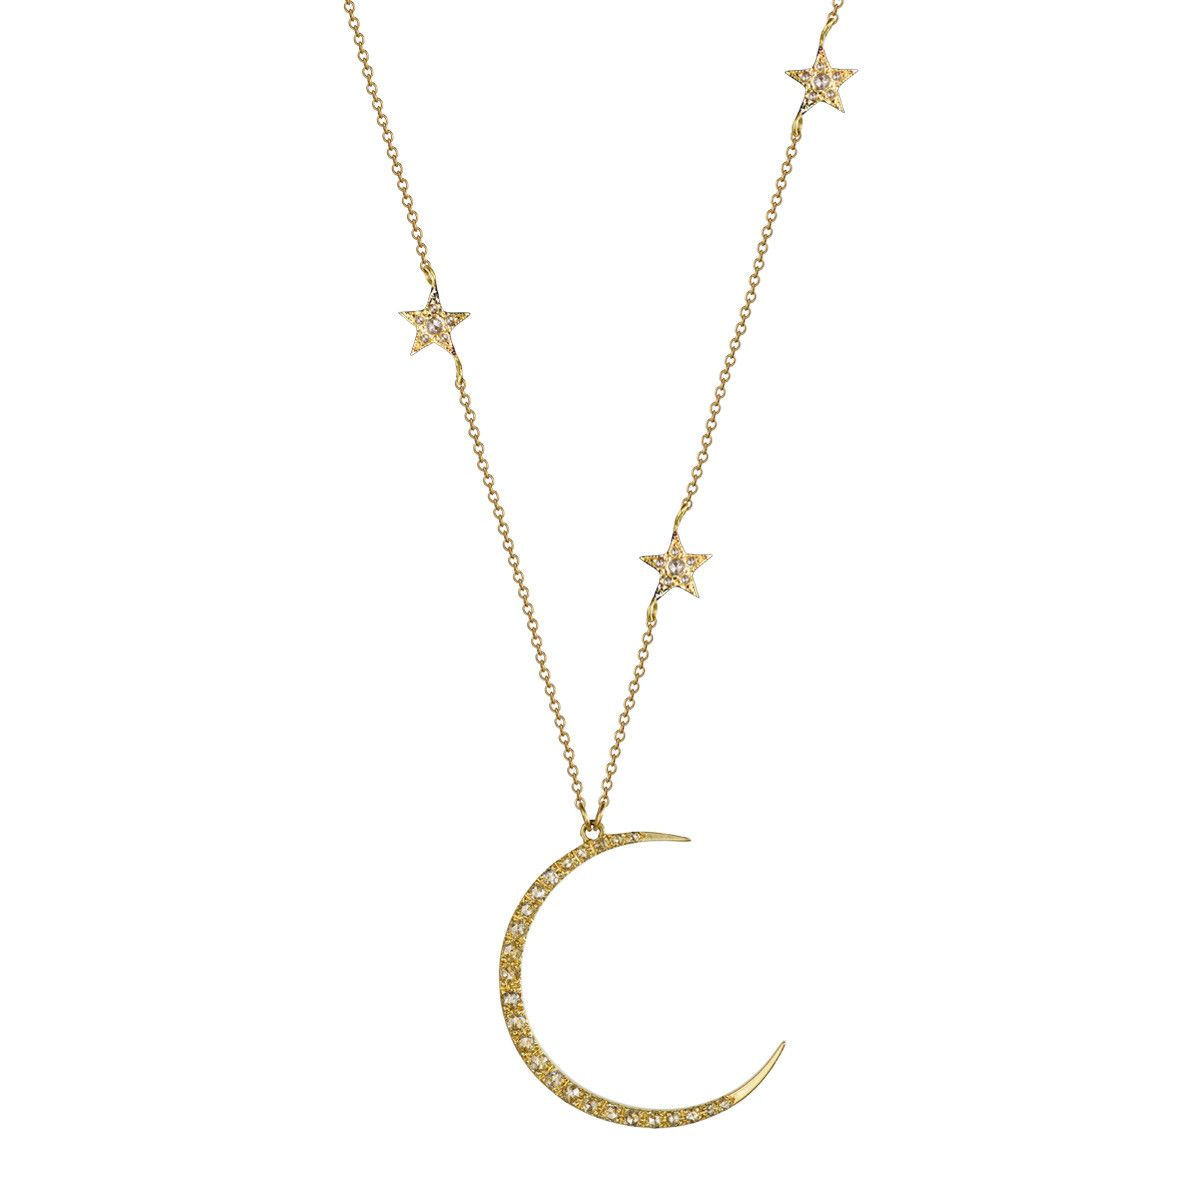 18k gold crescent moon triple star pendant with diamonds 18k 18k gold crescent moon triple star pendant with diamonds aloadofball Images